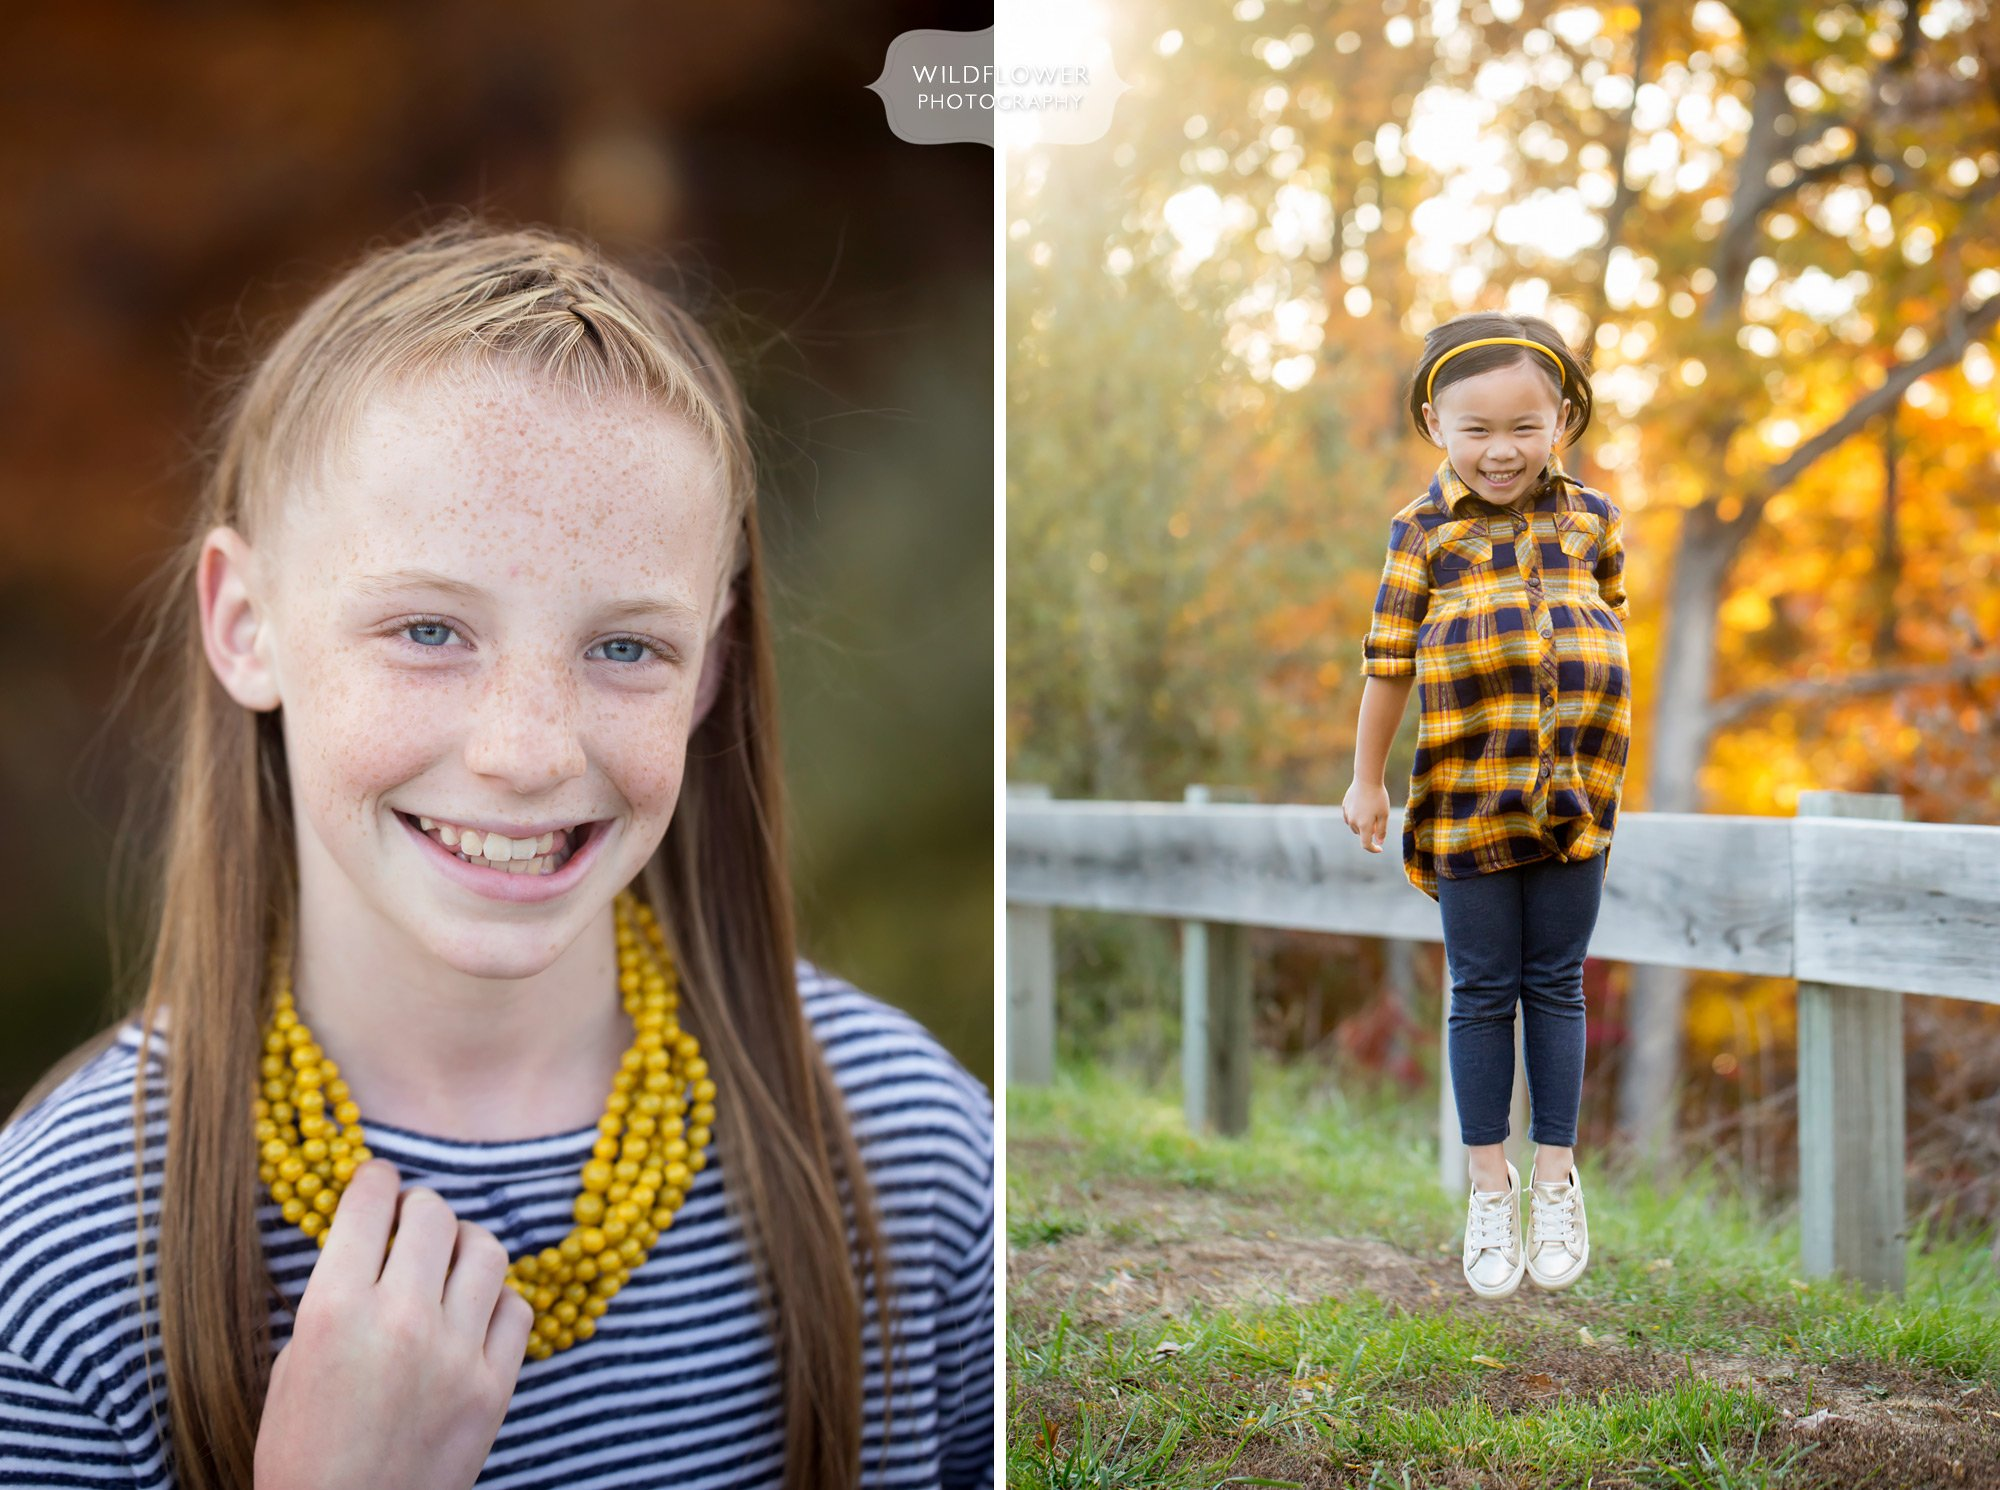 Fun family photographer in Columbia, MO for this October fall session.